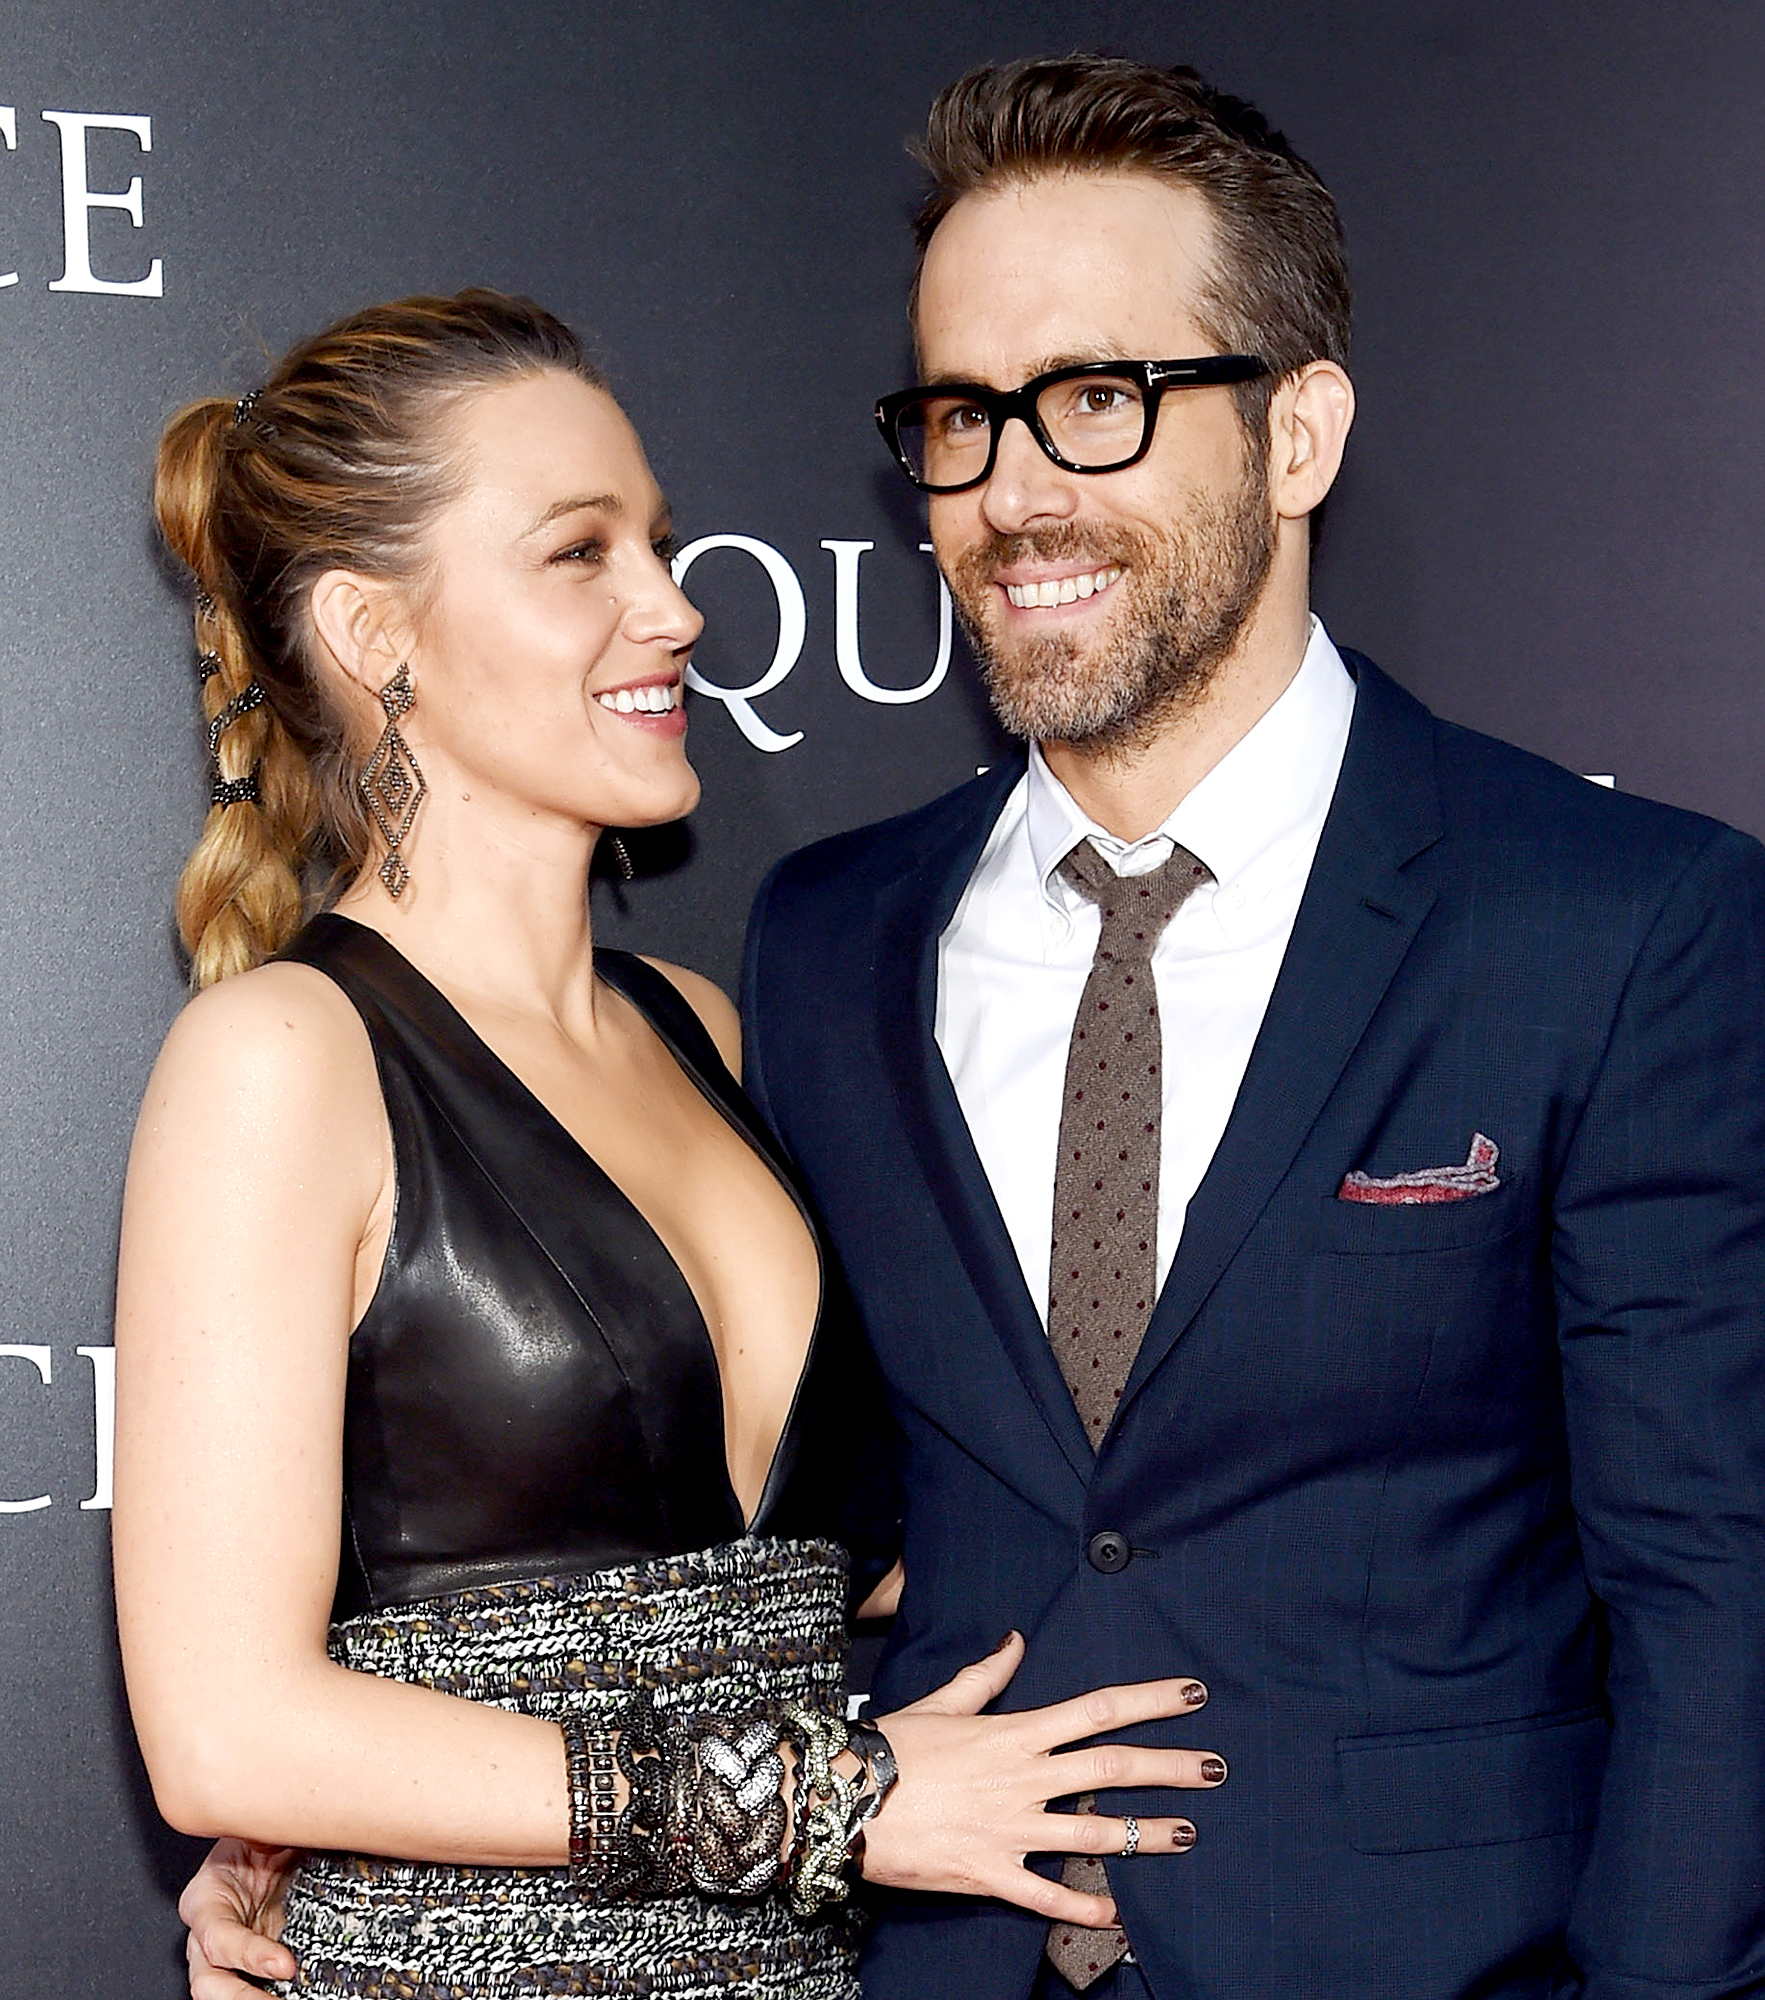 """Blake-Lively-Racy-Comment-Ryan-Reynolds-Instagram - Blake Lively and Ryan Reynolds attend the premiere for """"A Quiet Place"""" at AMC Lincoln Square Theater on April 2, 2018 in New York City."""